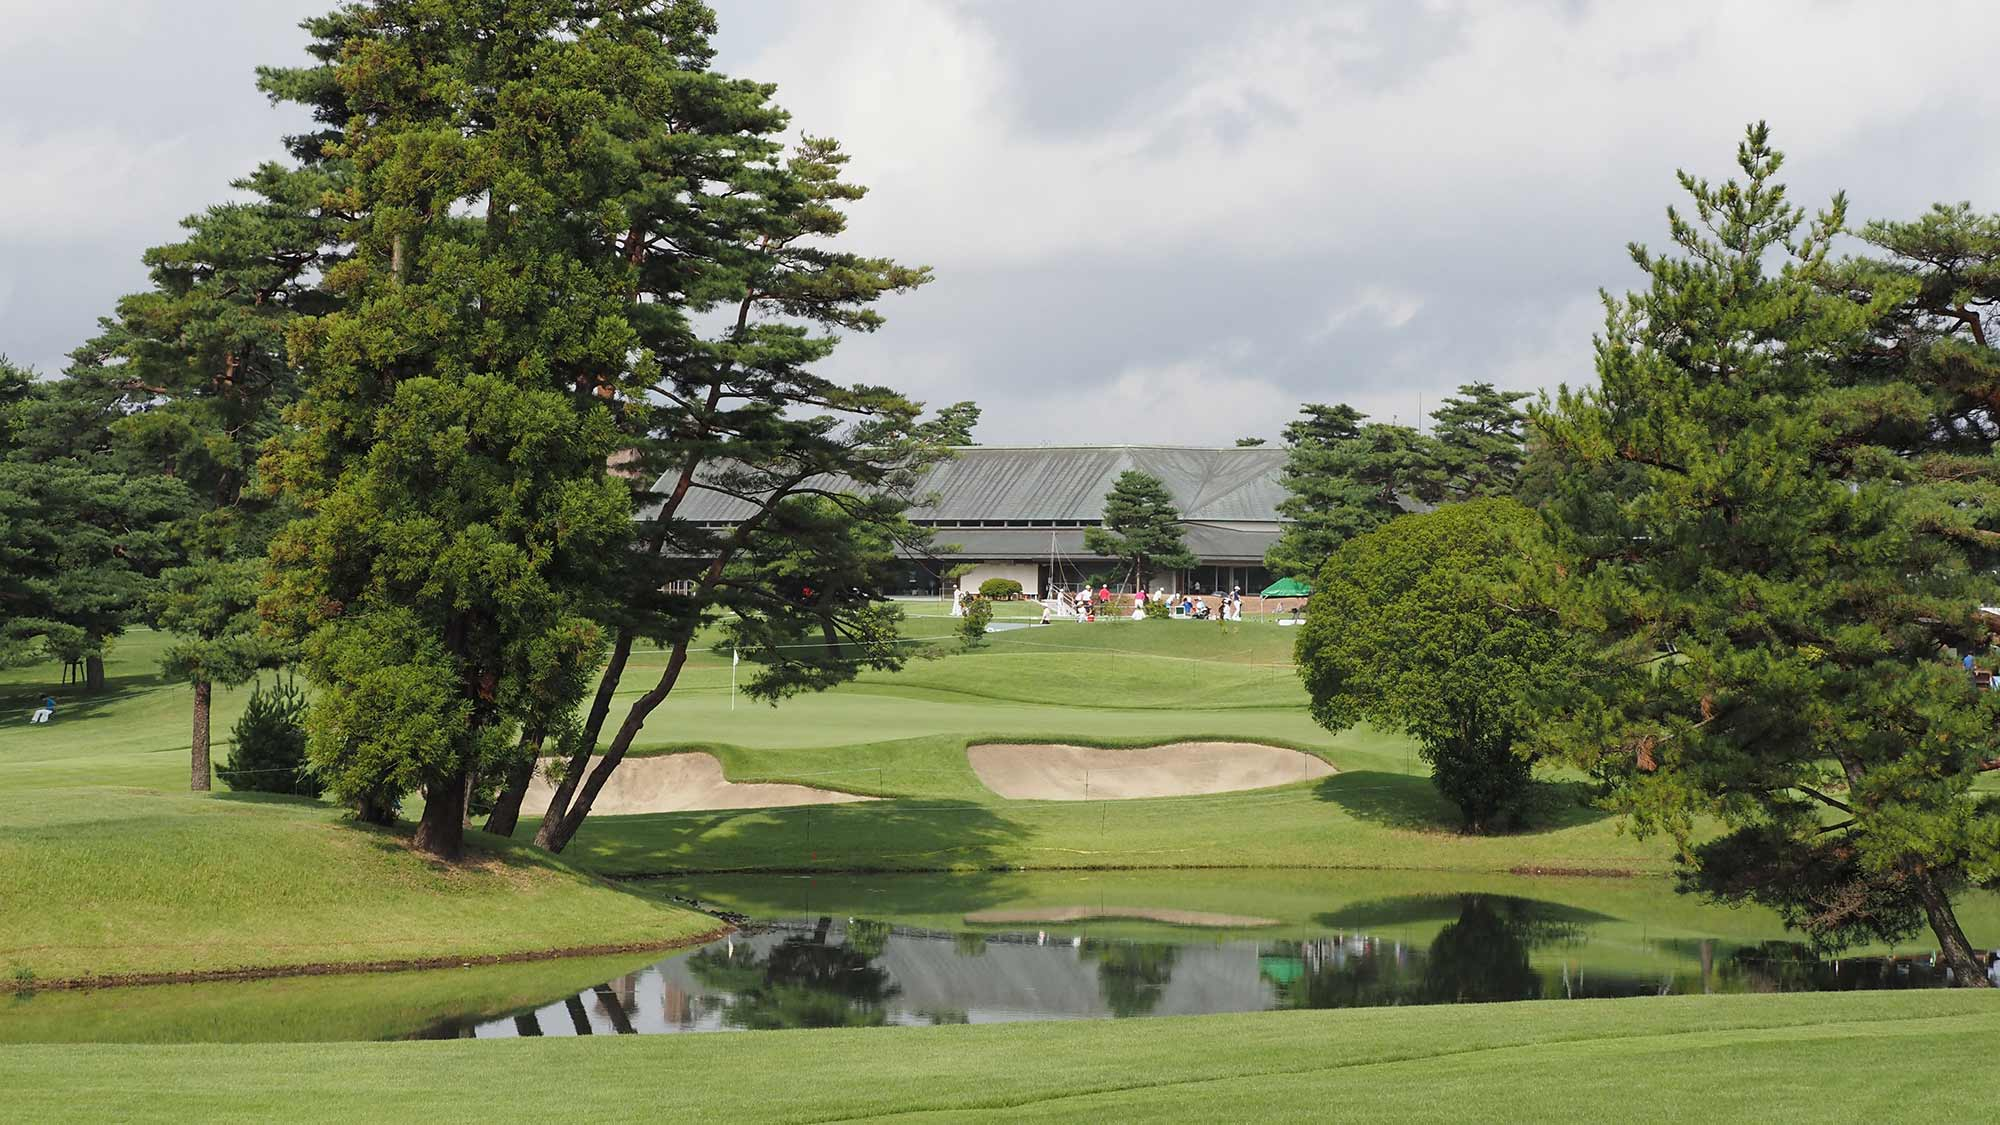 A view of Kasumigaseki Country Club, the host site of the men and women's golf competition for the 2020 Olympic Games in Tokyo, Japan